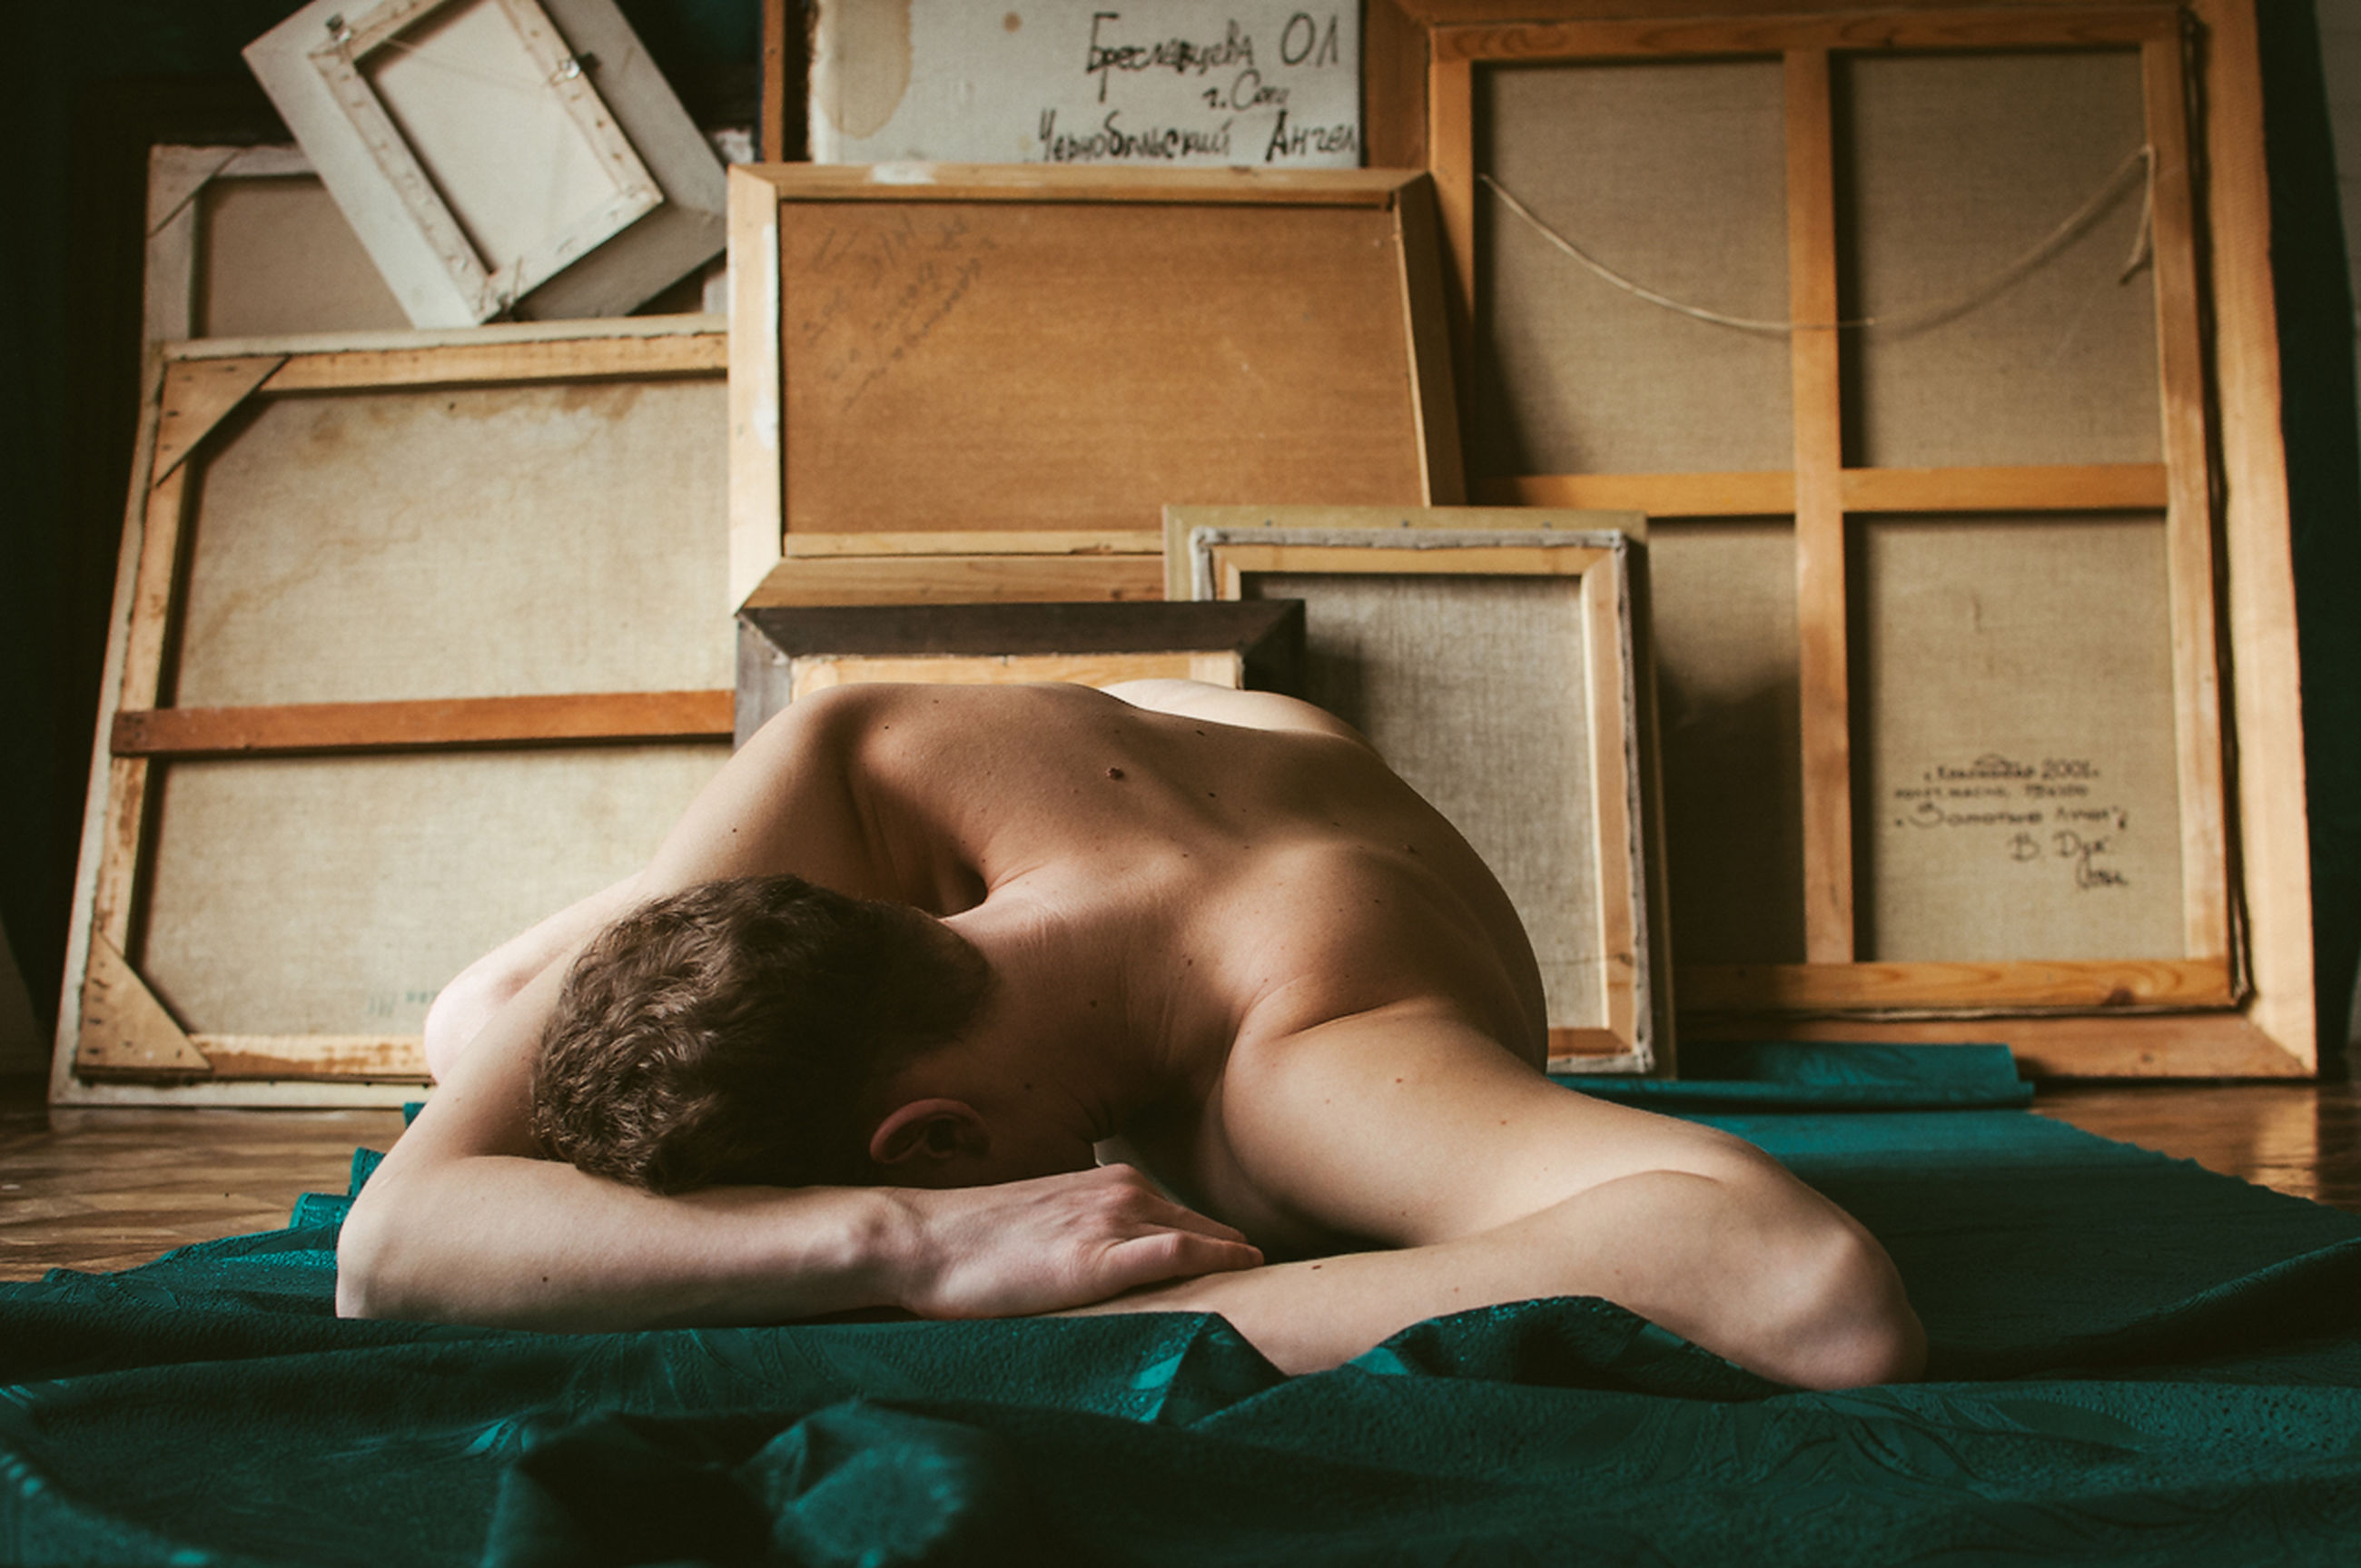 Naked man lying by picture frames